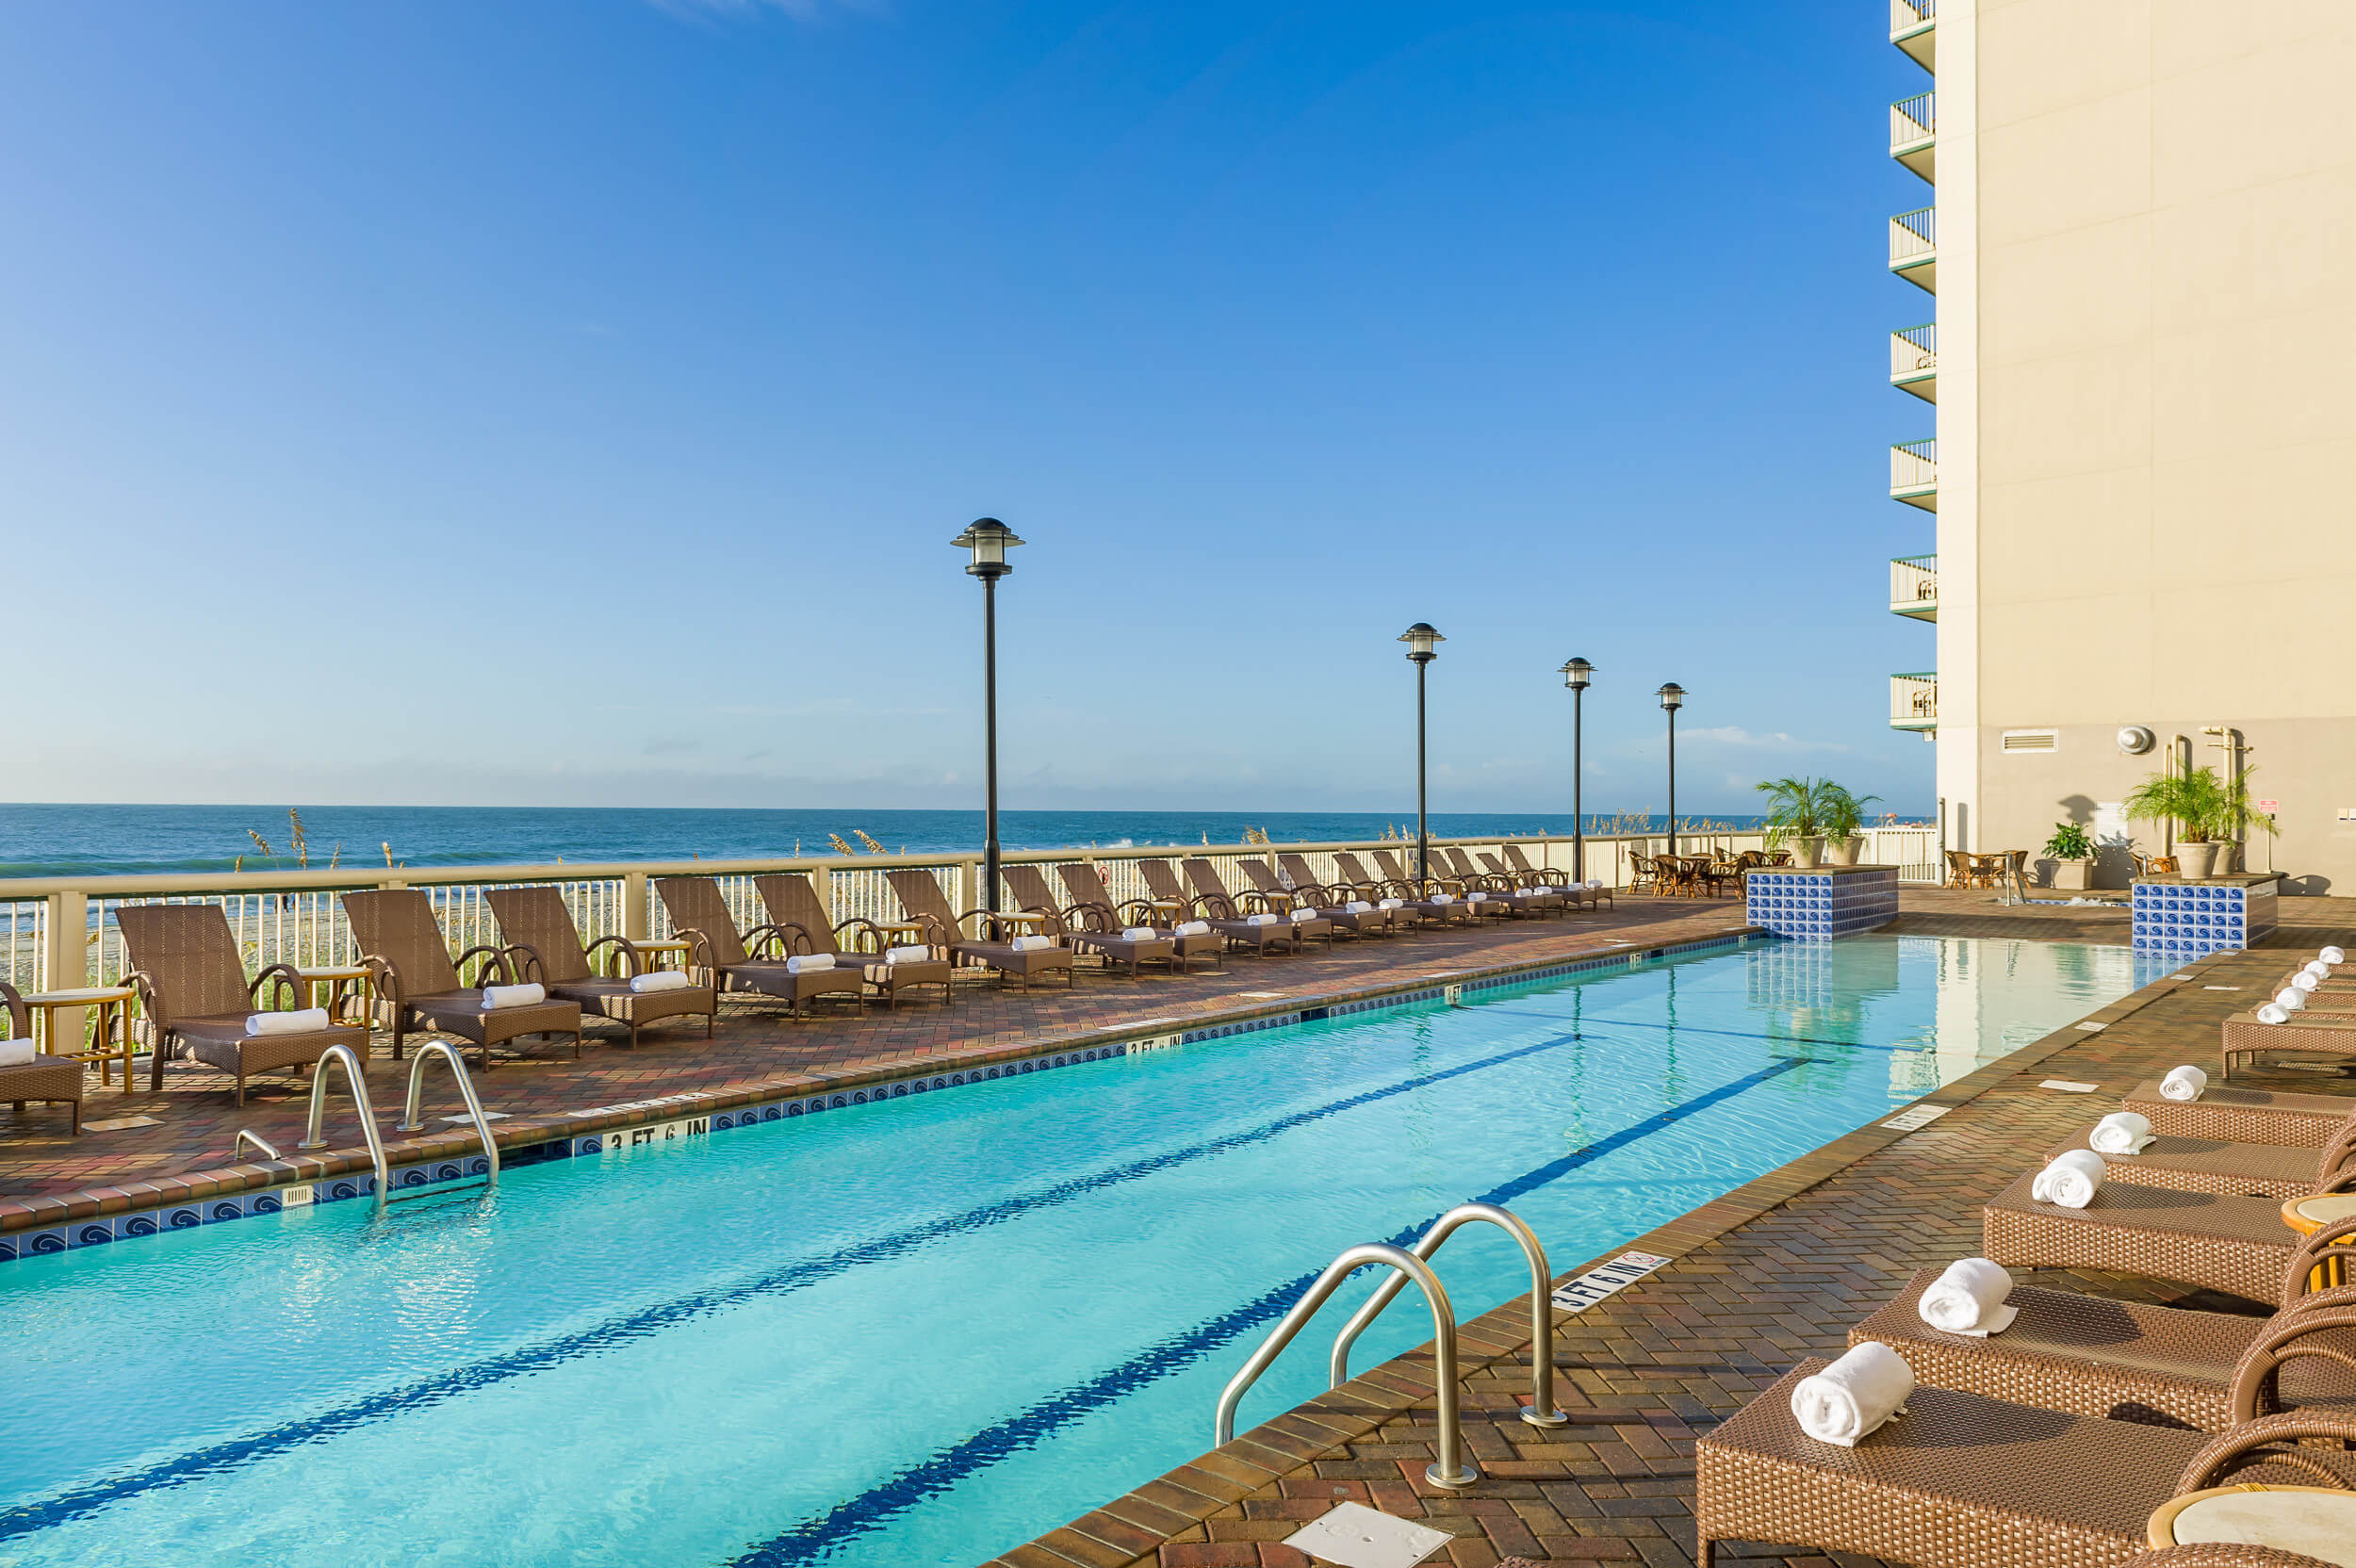 Lap pool overlooking white-sand beach | Westgate Myrtle Beach Oceanfront Resort